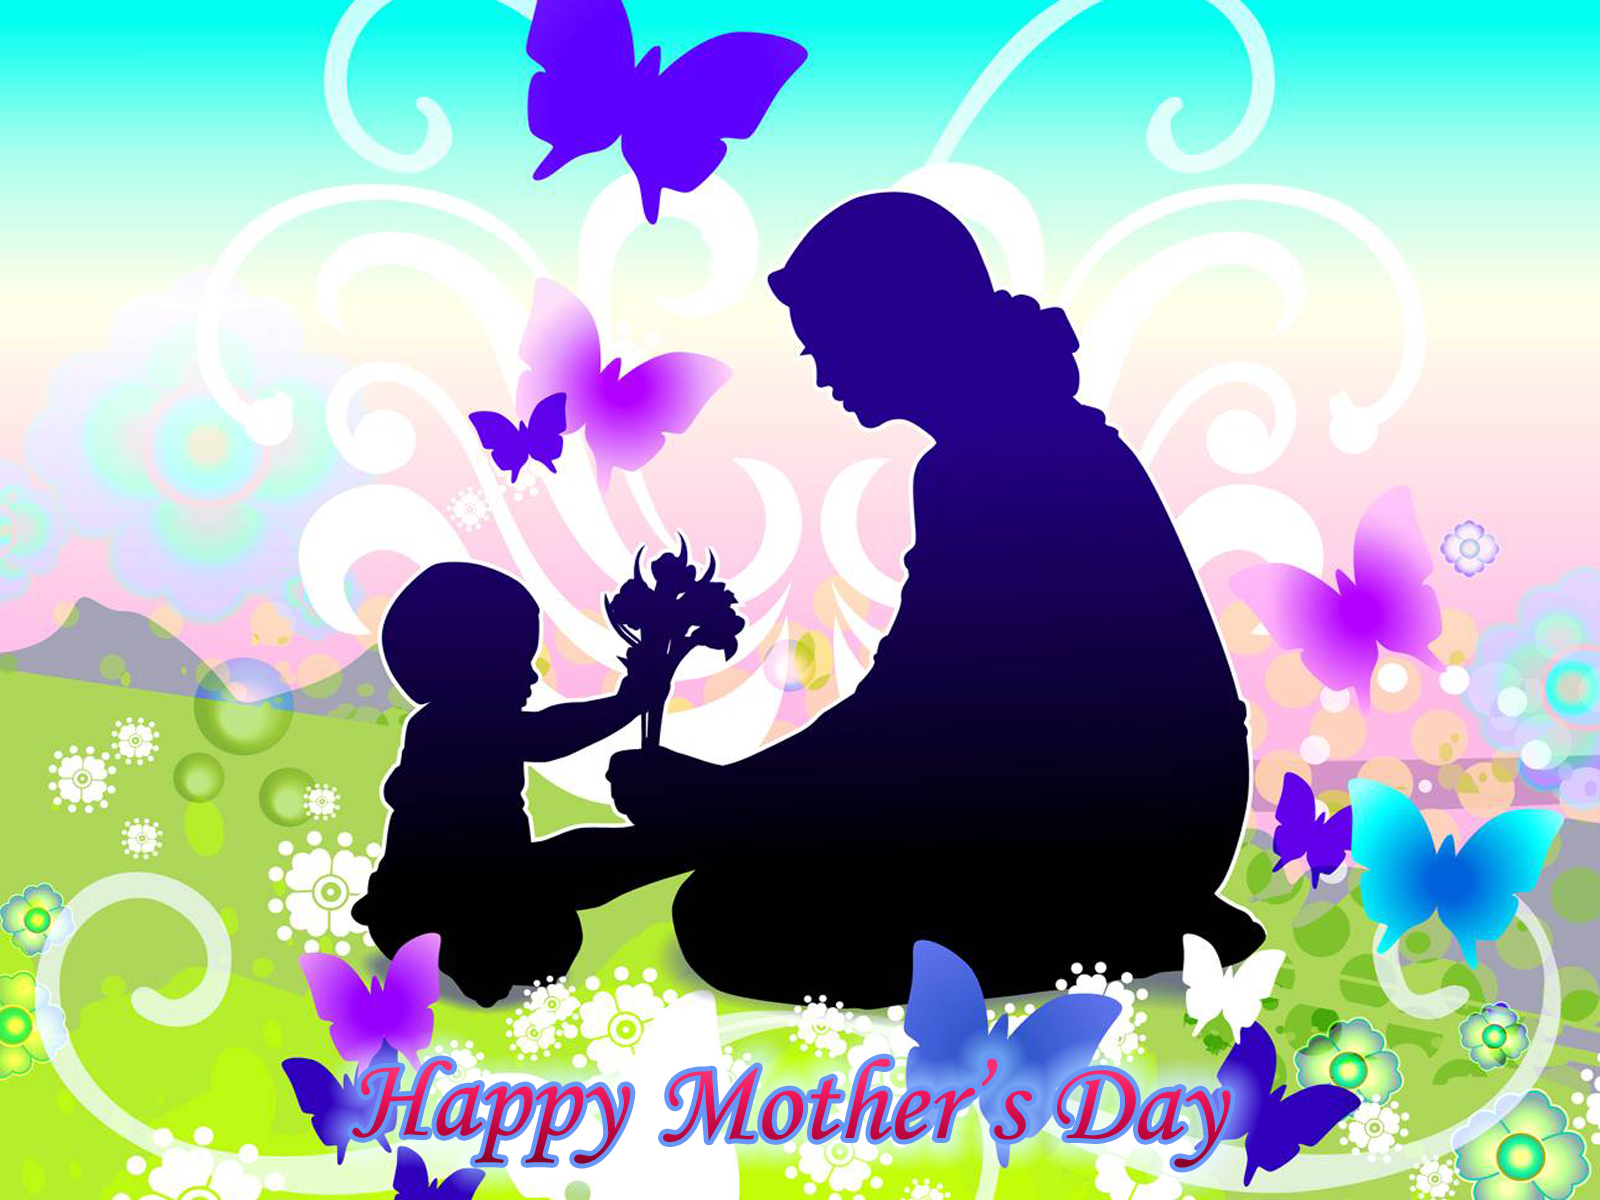 Happy Mothers Day computer desktop wallpaper 1600x1200